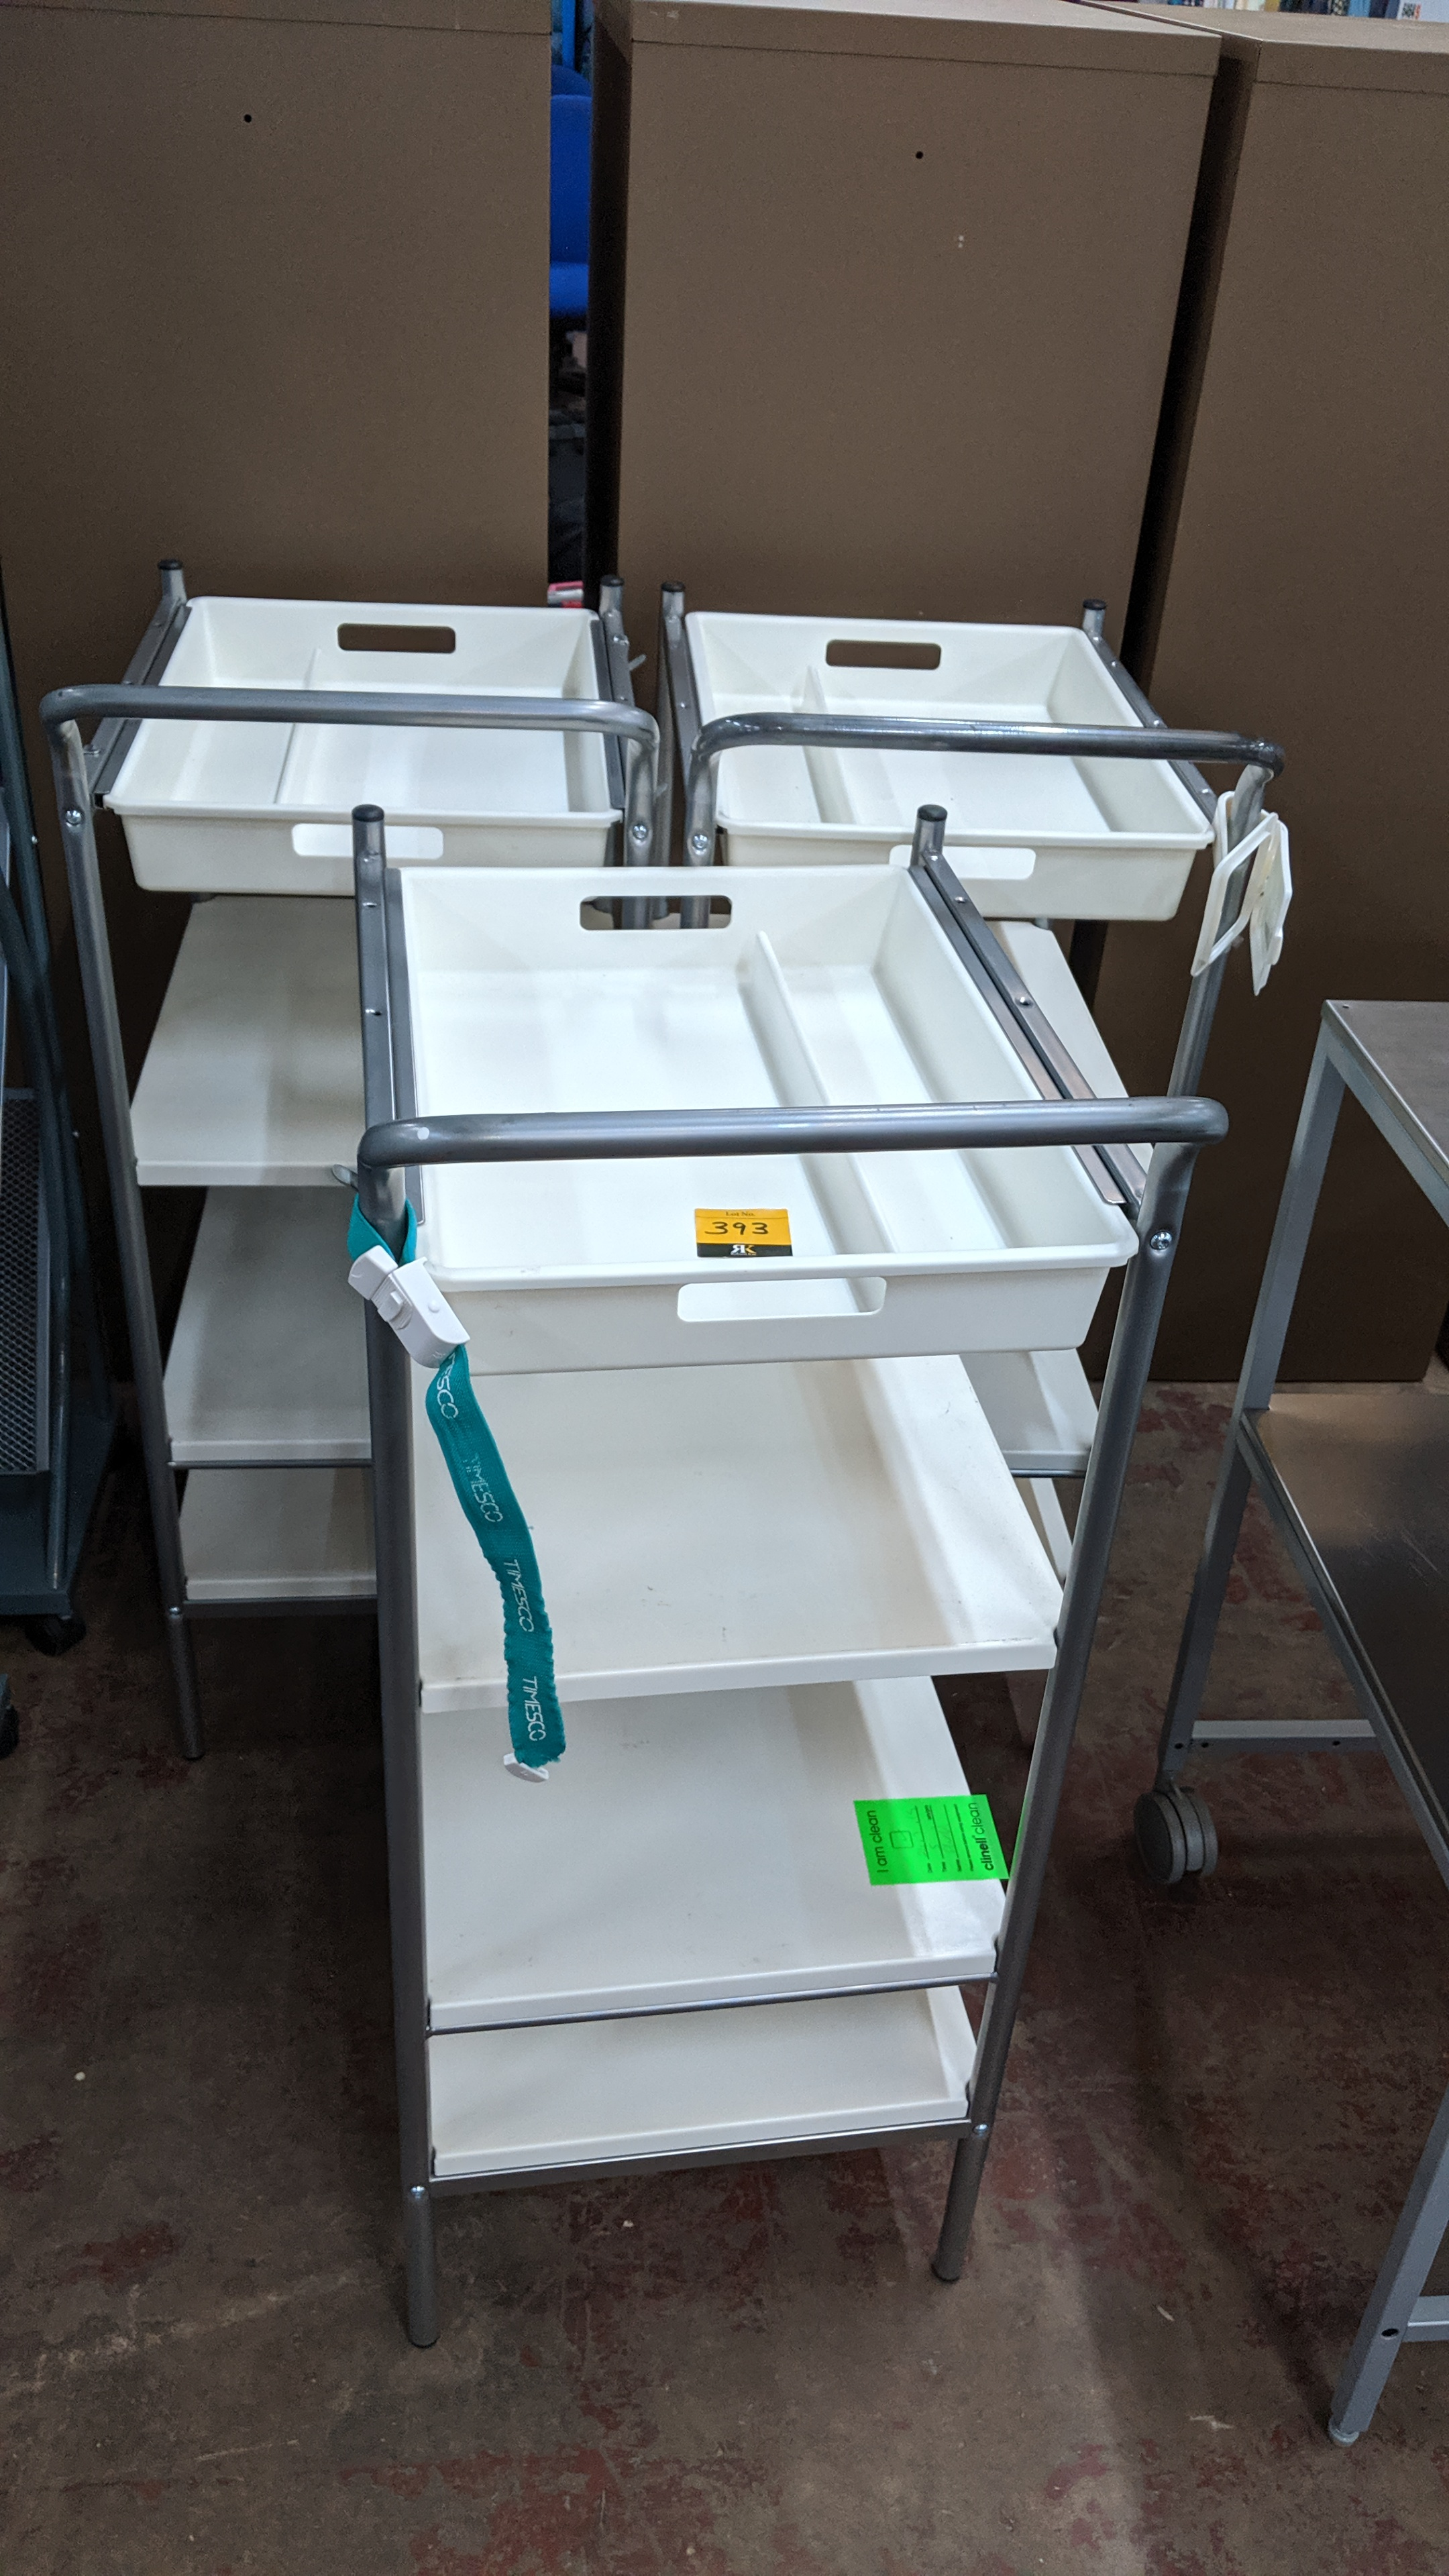 Lot 393 - 3 off medical trolleys. This is one of a large number of lots used/owned by One To One (North